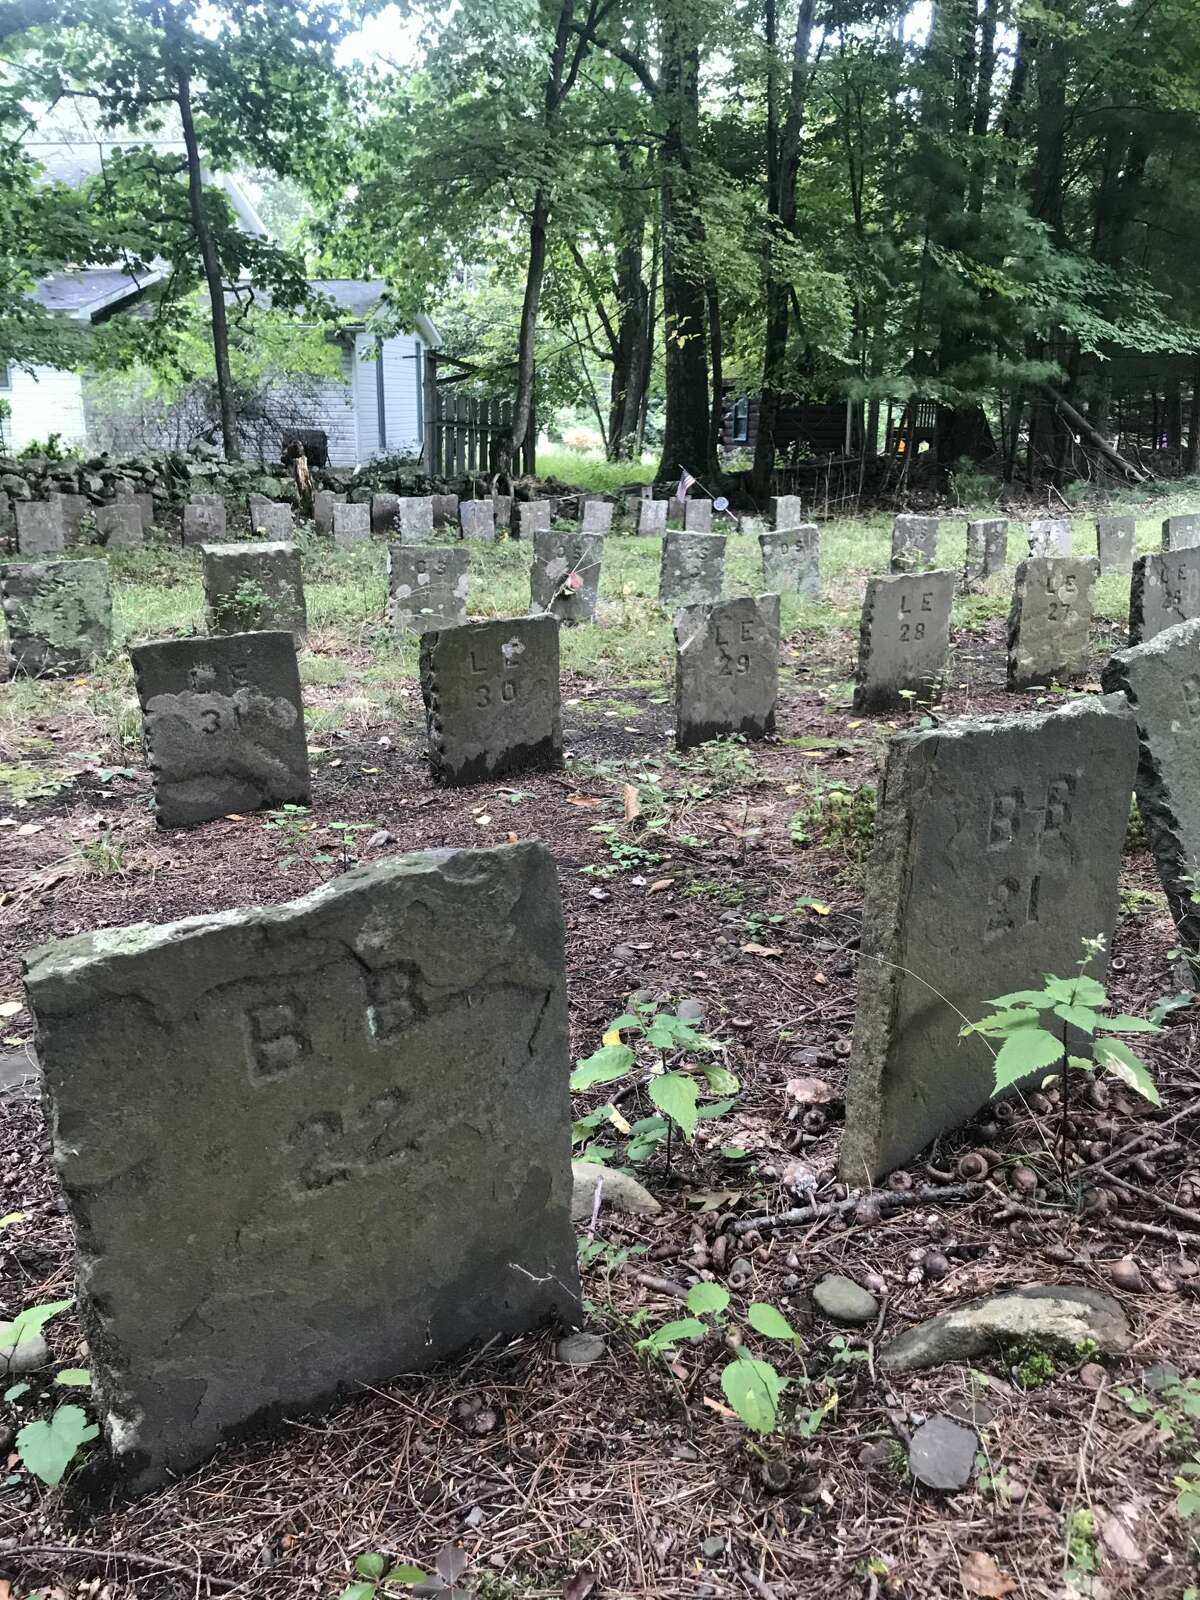 """Dr. April M. Beisaw, an archeologist whose book """"Taking their Water for Our City: Archaeology in New York City Watershed Communities"""" will be published next year, believes the 285 headstones that bear no names at Bushkill Cemetery in West Shokan deserve interpretative signage to explain what happened to these displaced gravesites."""